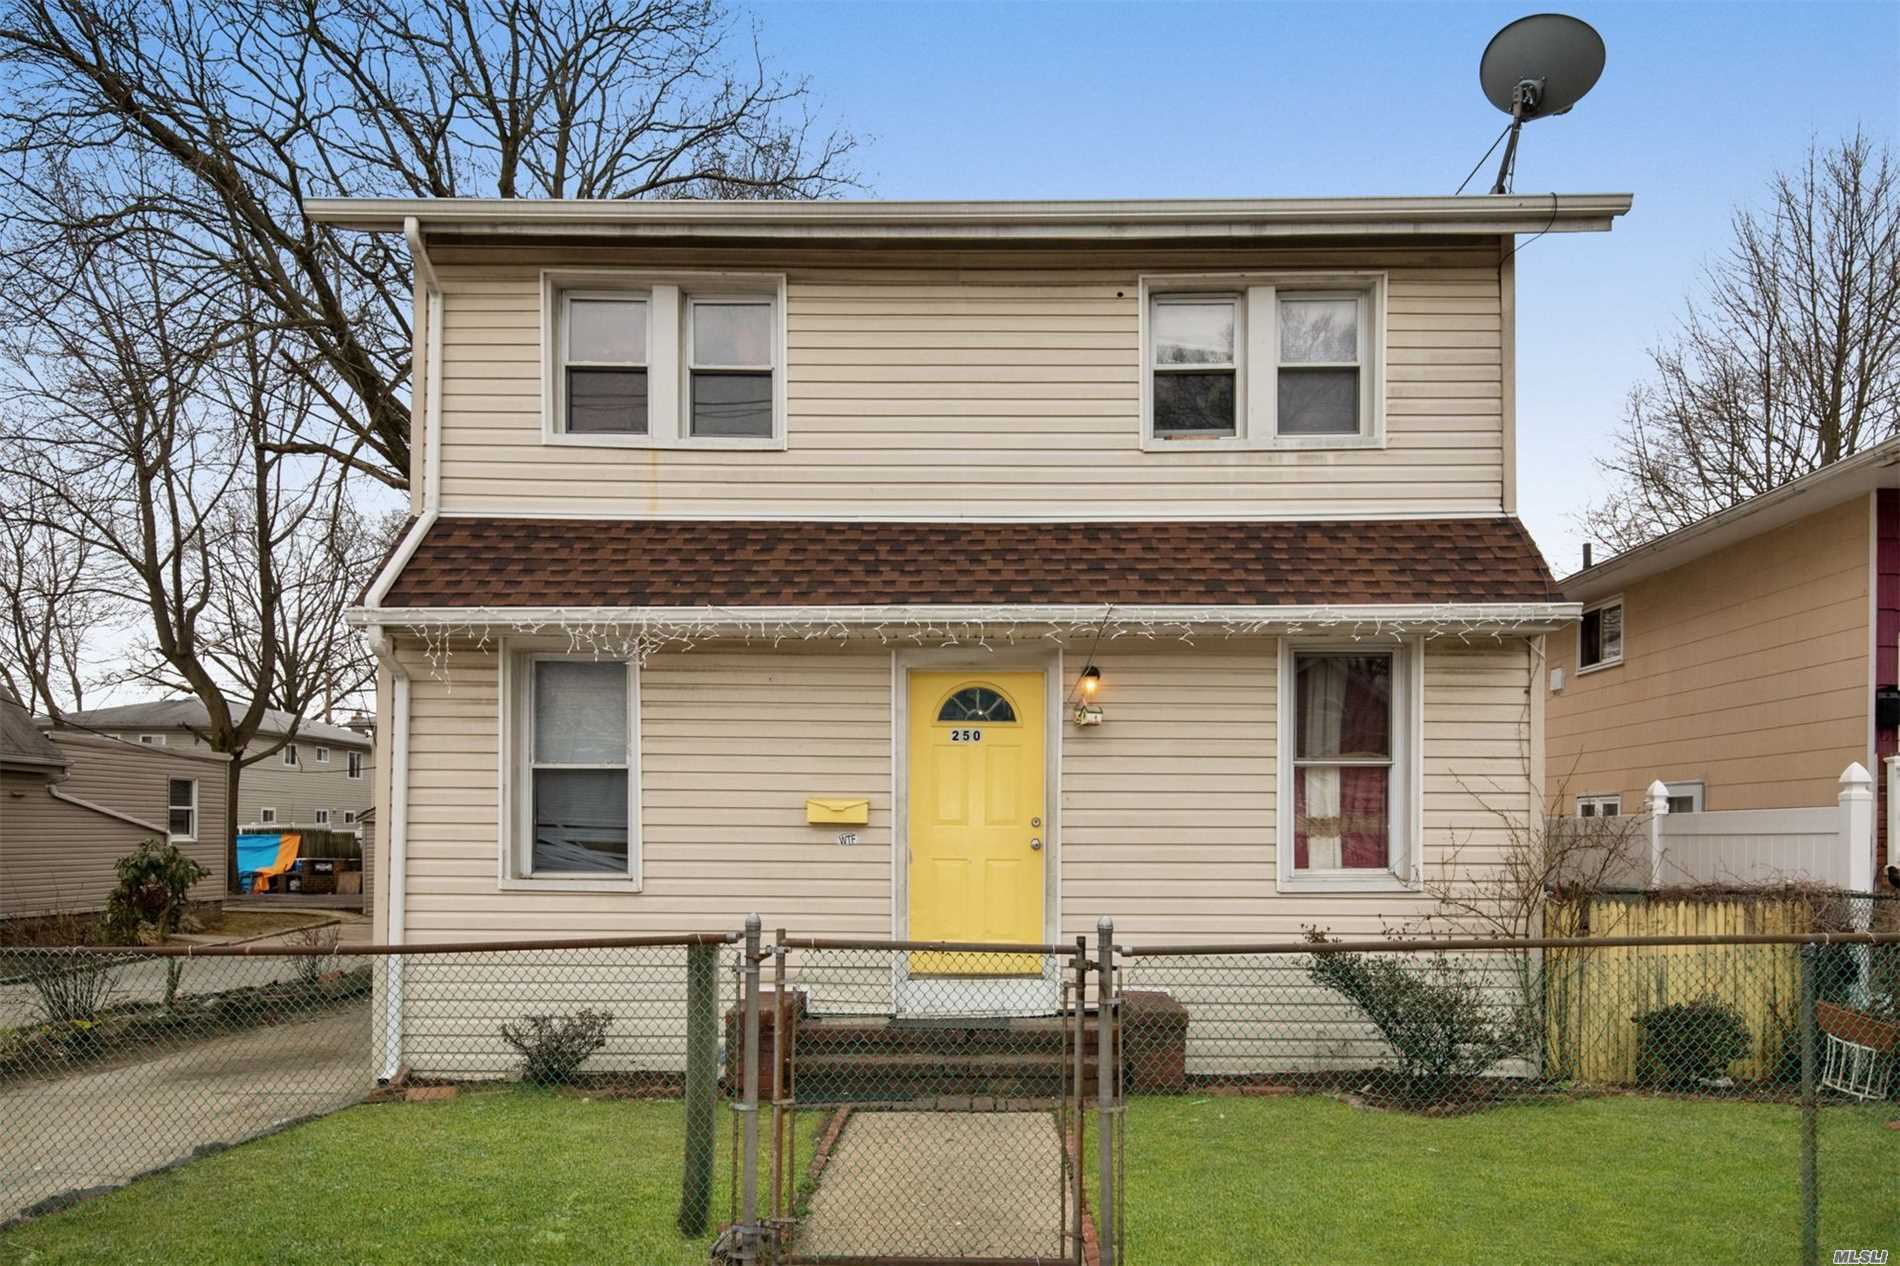 Excellent 1806 square foot 3 bedroom 2 full bathroom colonial in Hempstead. Featuring hardwood floors, spacious bedrooms, formal dining room, office/room, gas stove, full basement with a room and full bathroom. Spacious backyard for entertaining and detached garage. Close To Shops, Restaurants, and transportation. 3D Virtual Tour, Floor Plan, & Doll House View Available. See Video Or Virtual Tour Link.